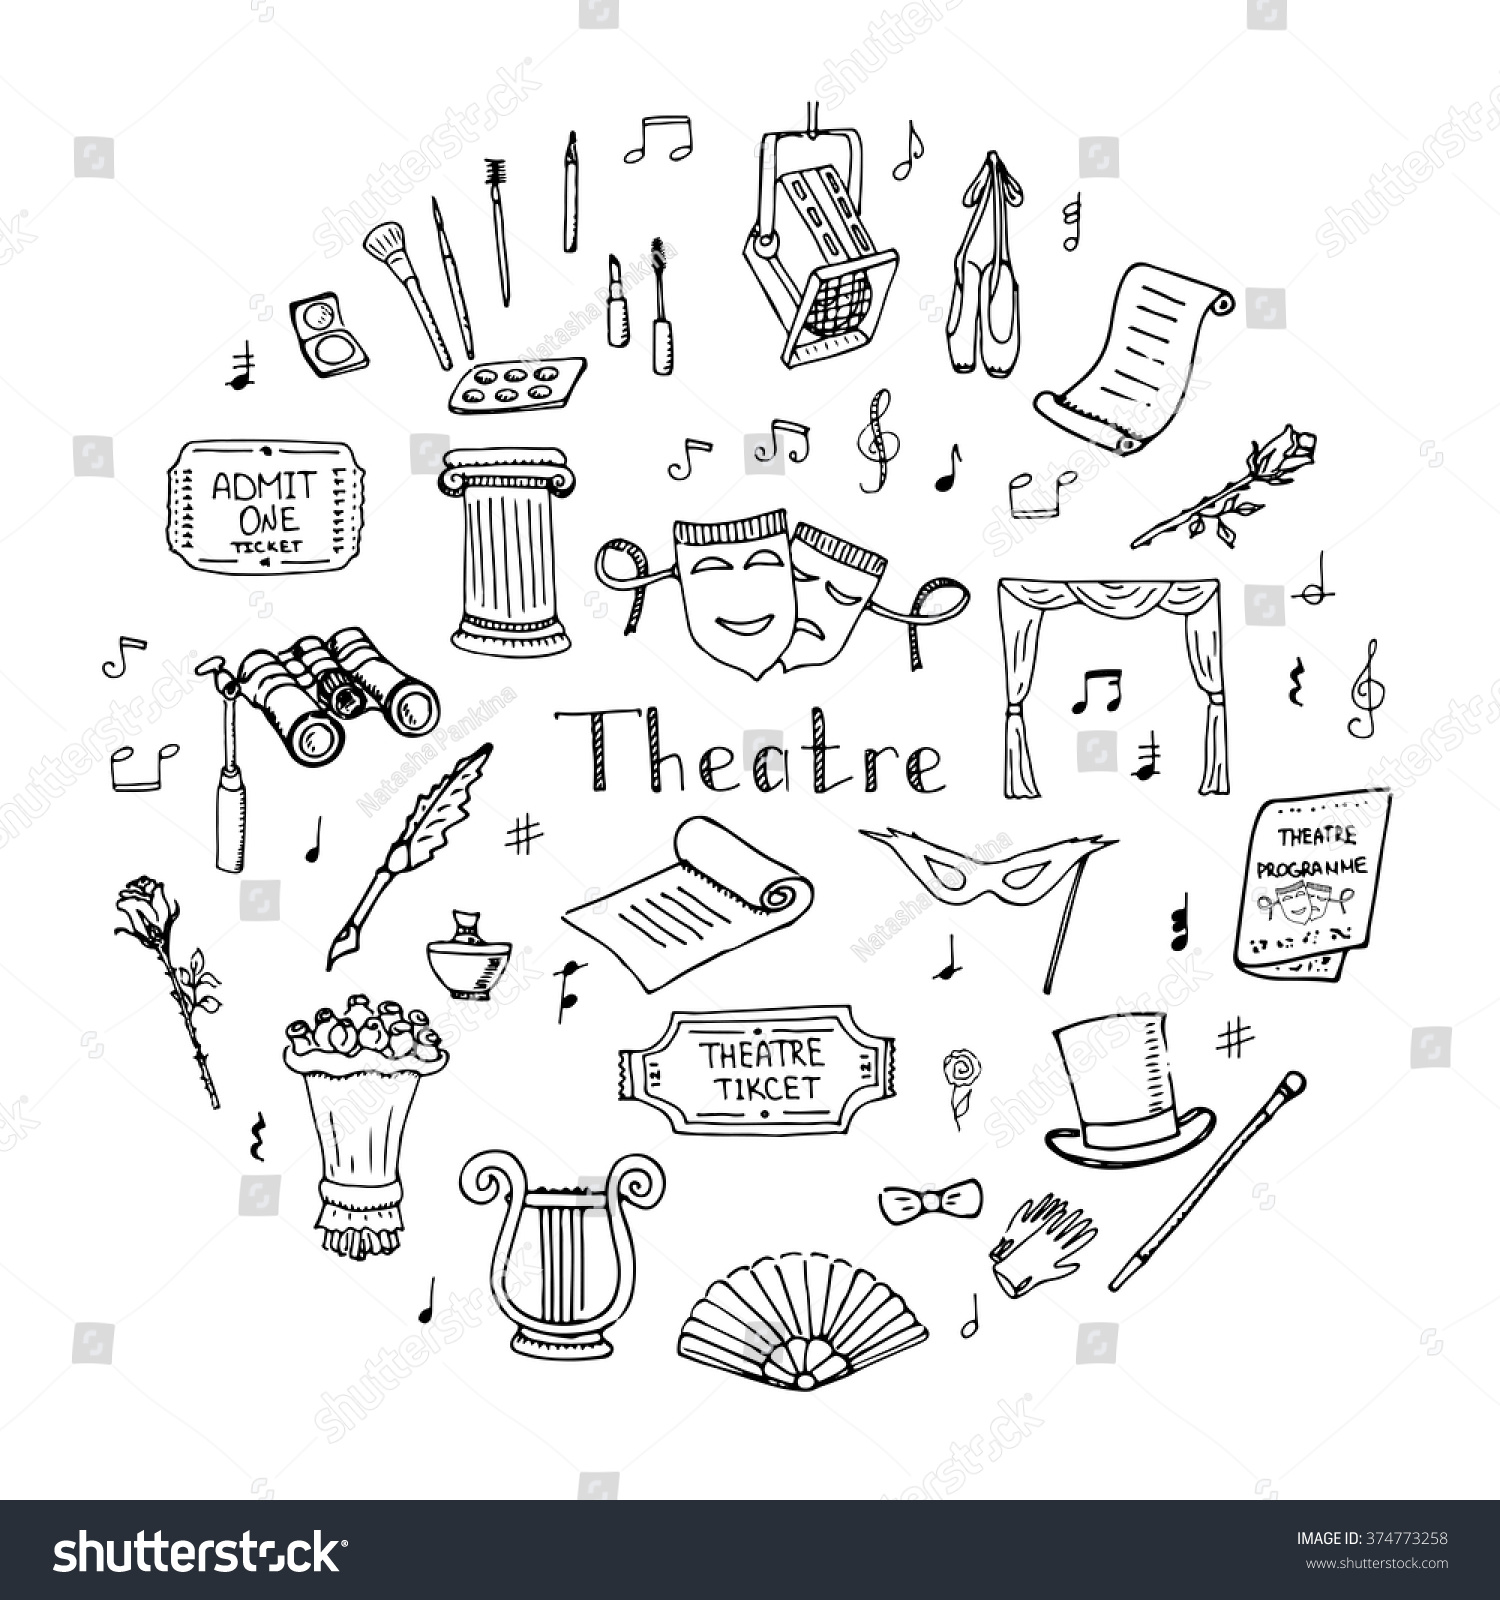 hand drawn doodle theatre set vector stock vector 374773258 hand drawn doodle theatre set vector illustration sketchy theater icons theatre acting performance elements ticket masks